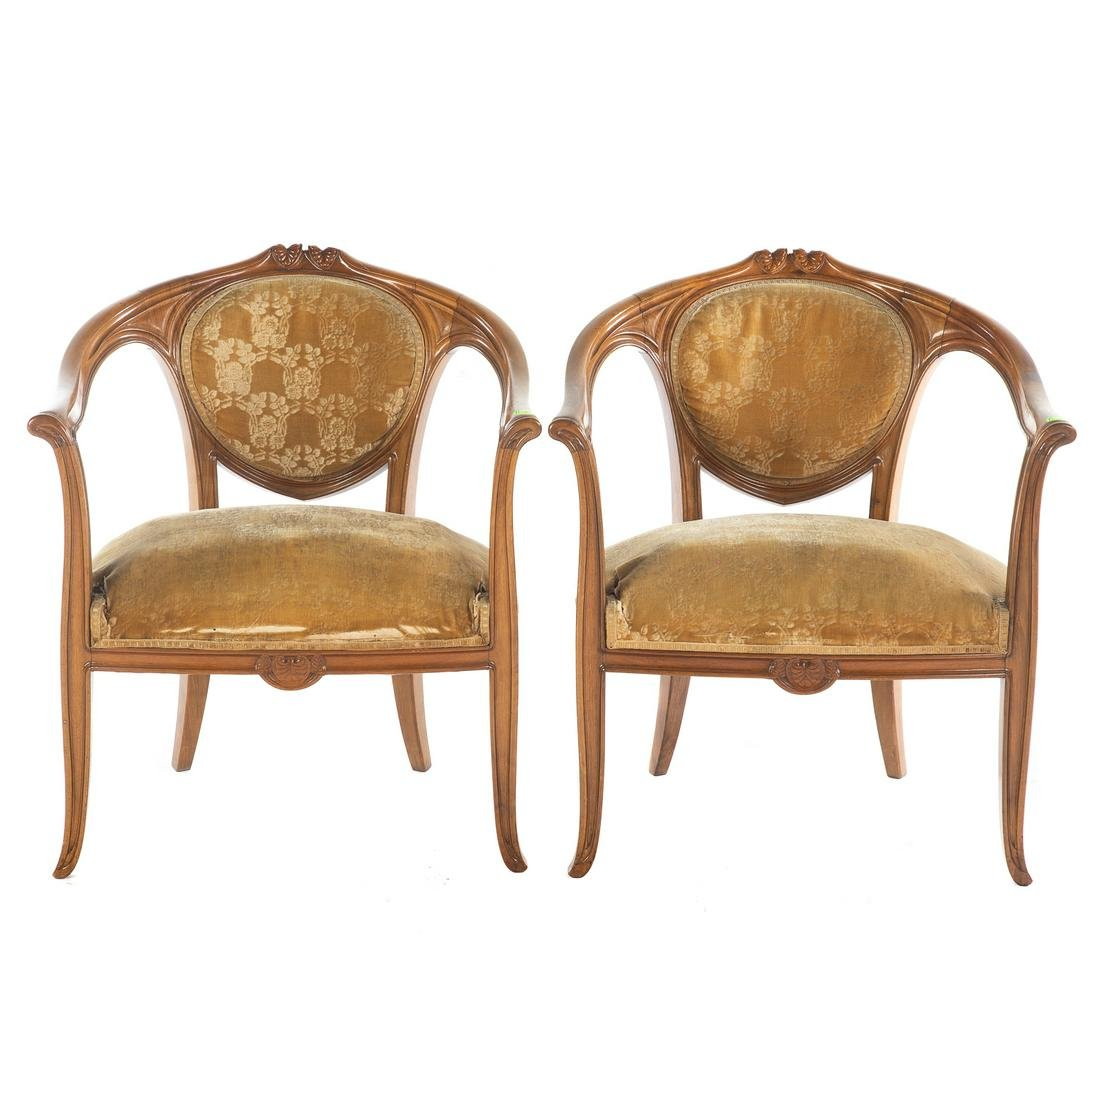 Pair French Art Nouveau Walnut Fauteuils